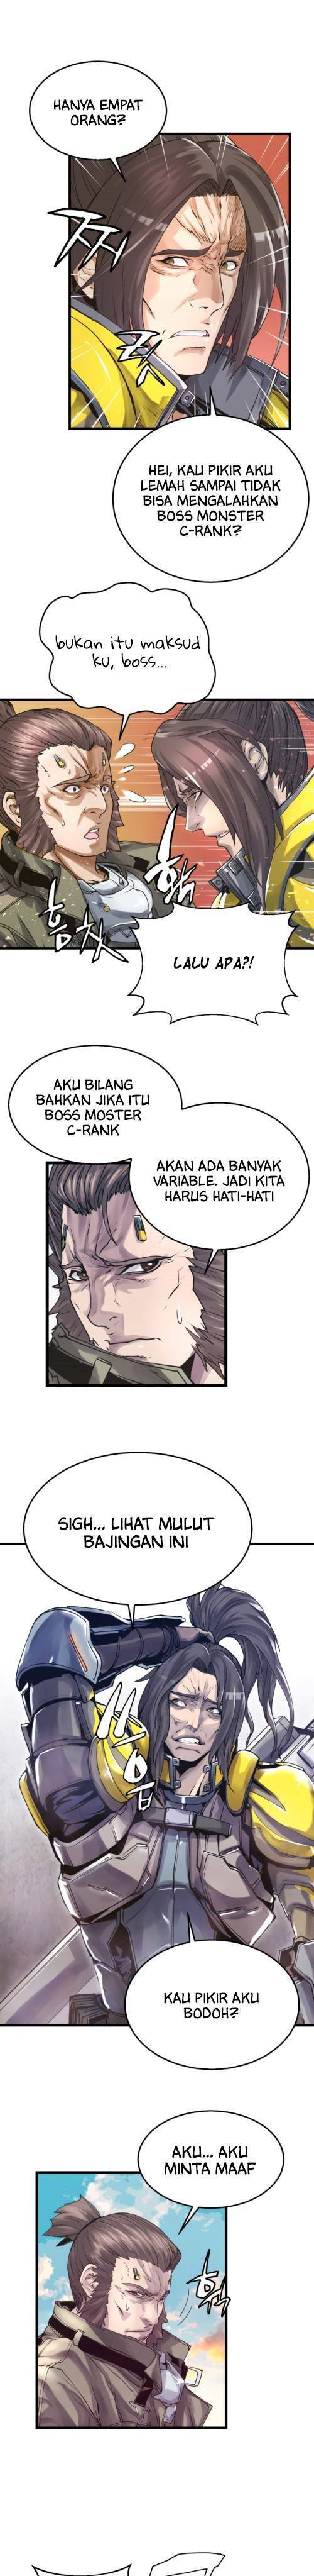 The Undefeated Ranker Chapter 04